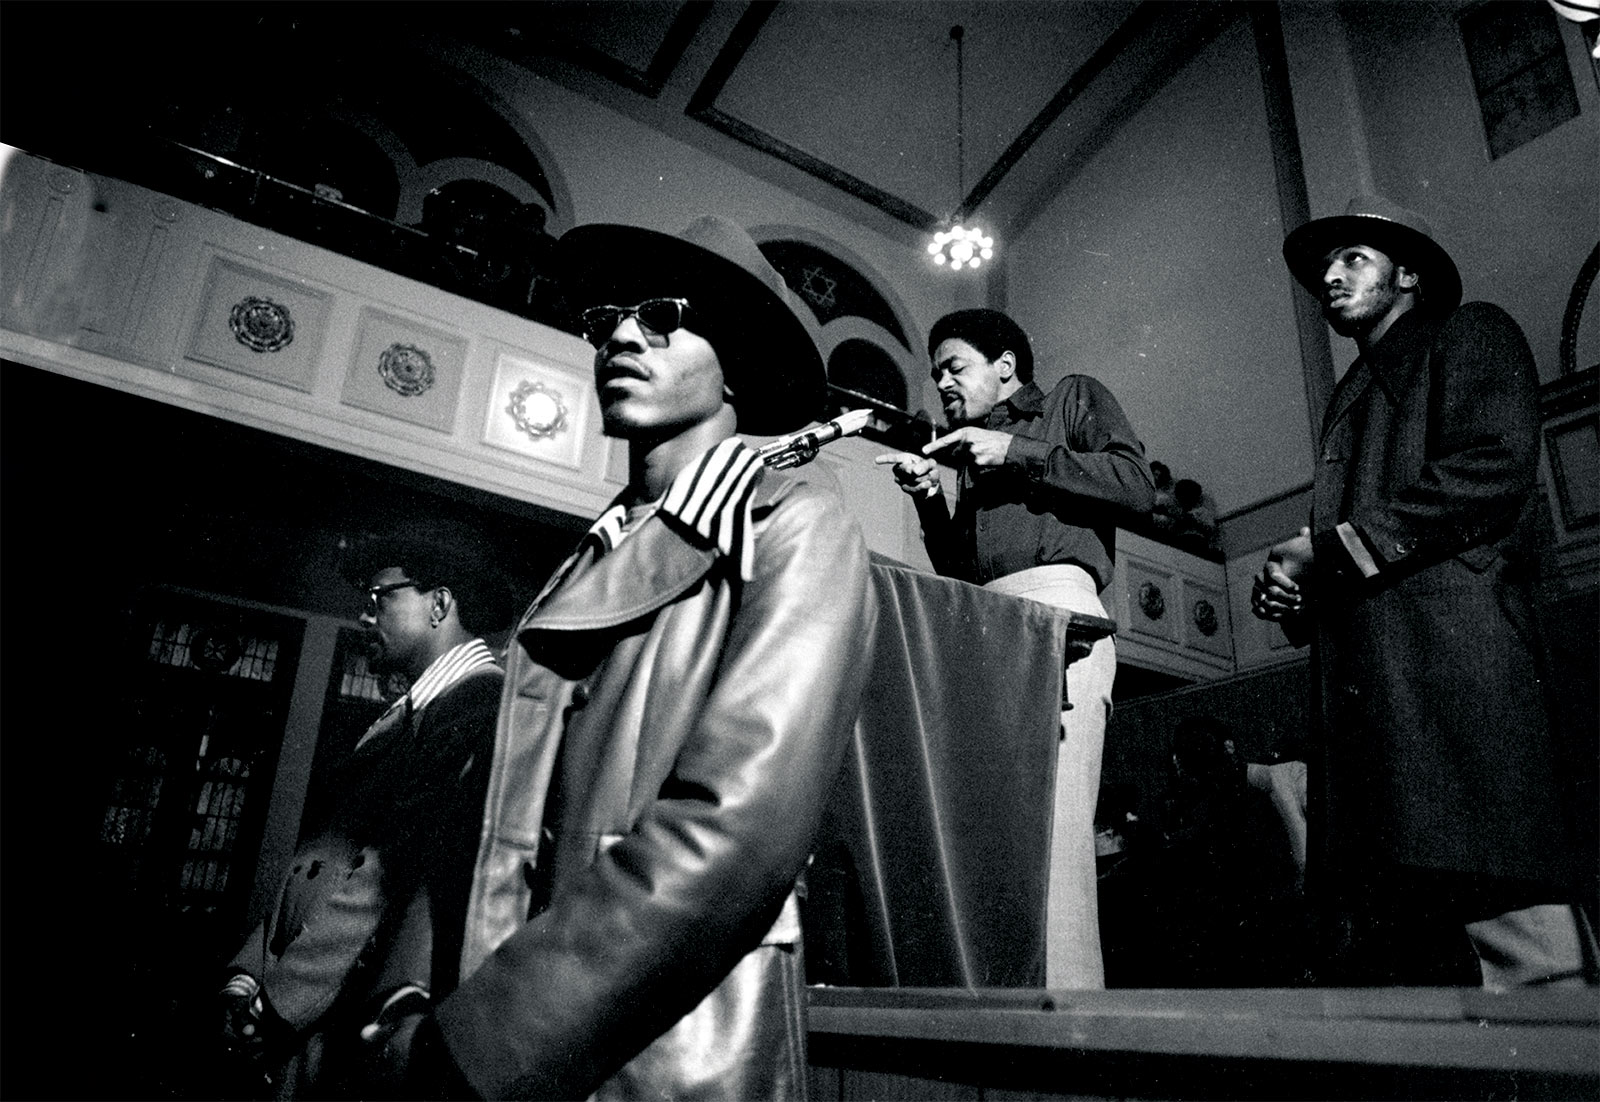 Black Panther Party leader Bobby Seale addresses a crowd from the podium flanked by bodyguards, Chicago, 1971.